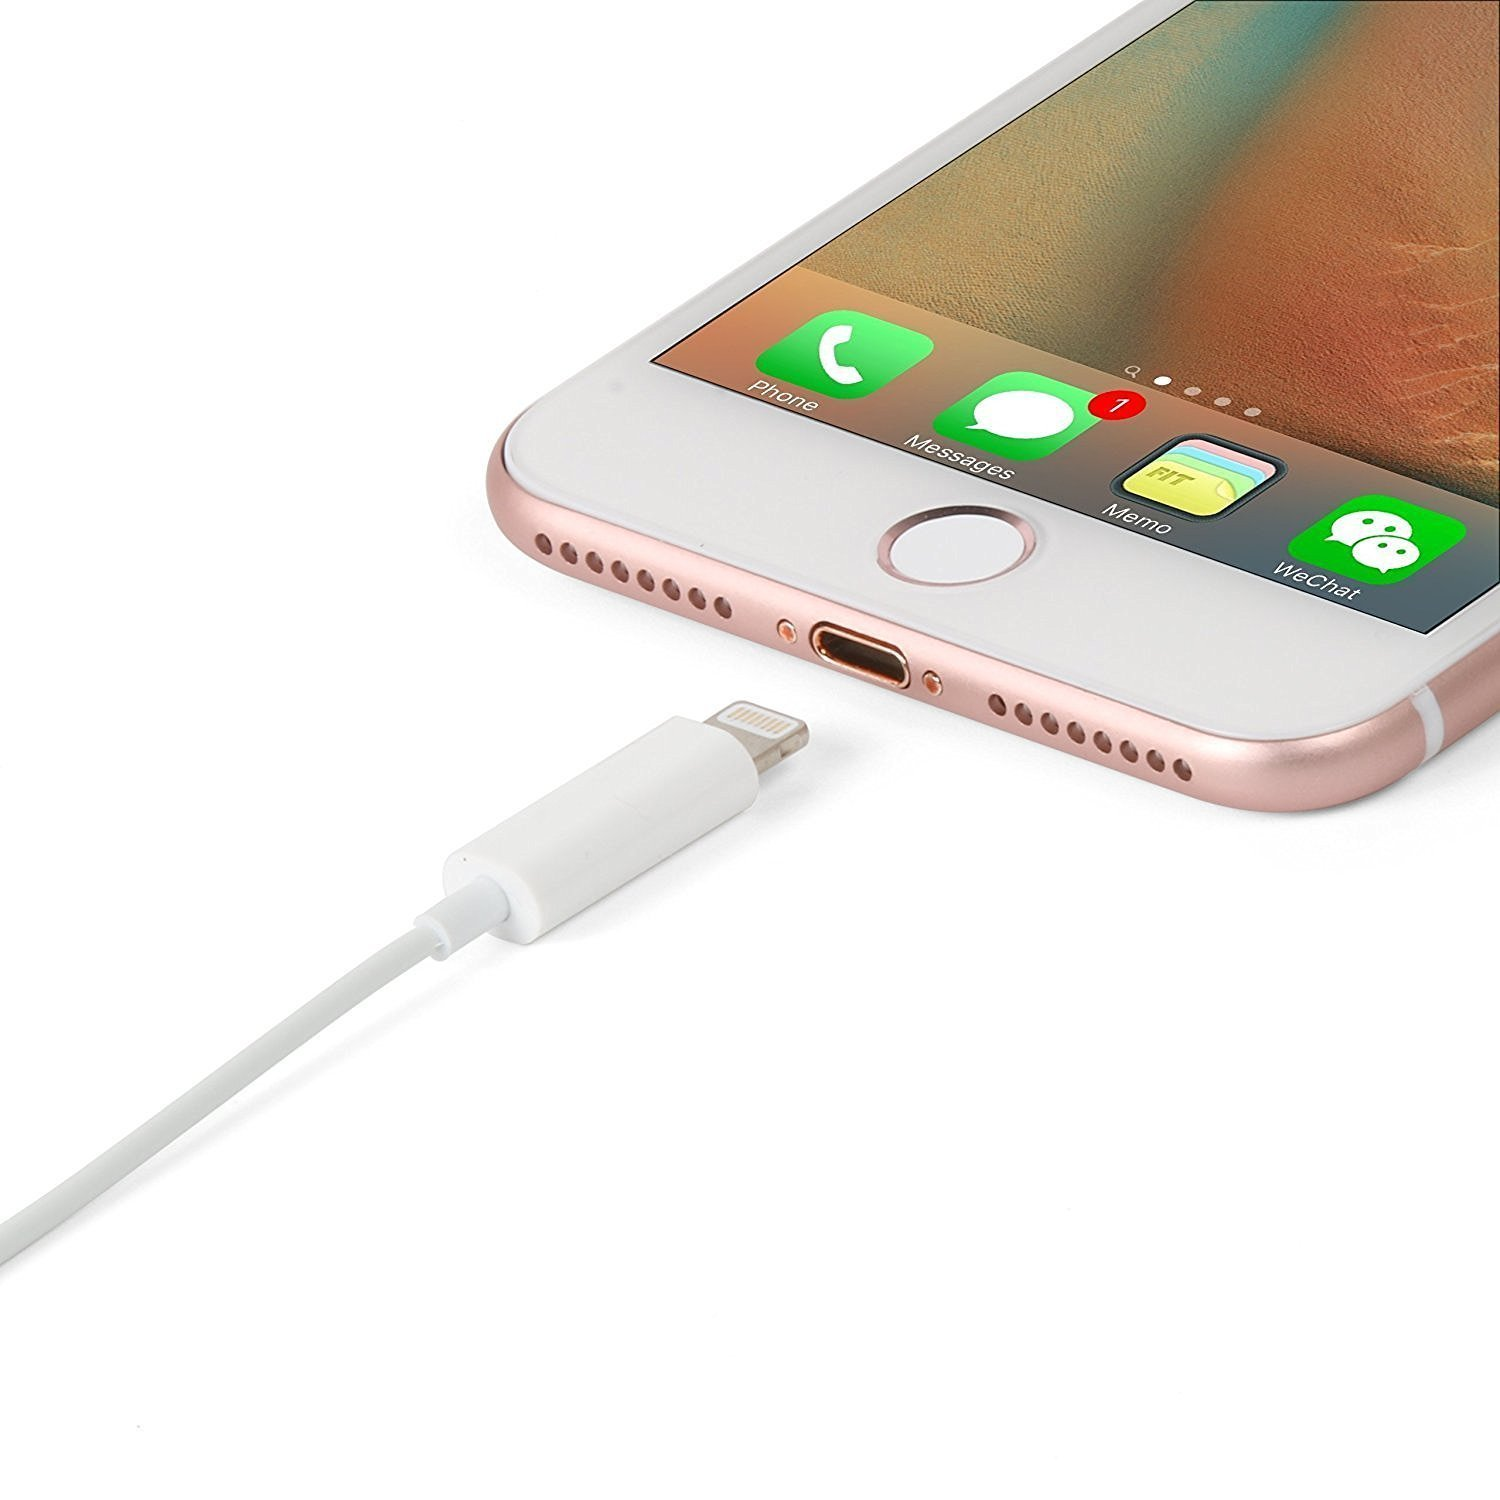 Iphone 8 Pin Wiring Diagram Free Download Headphone Jack Plug Additionally Amazon Com Lighting Connector To 3 5 Mm Also With